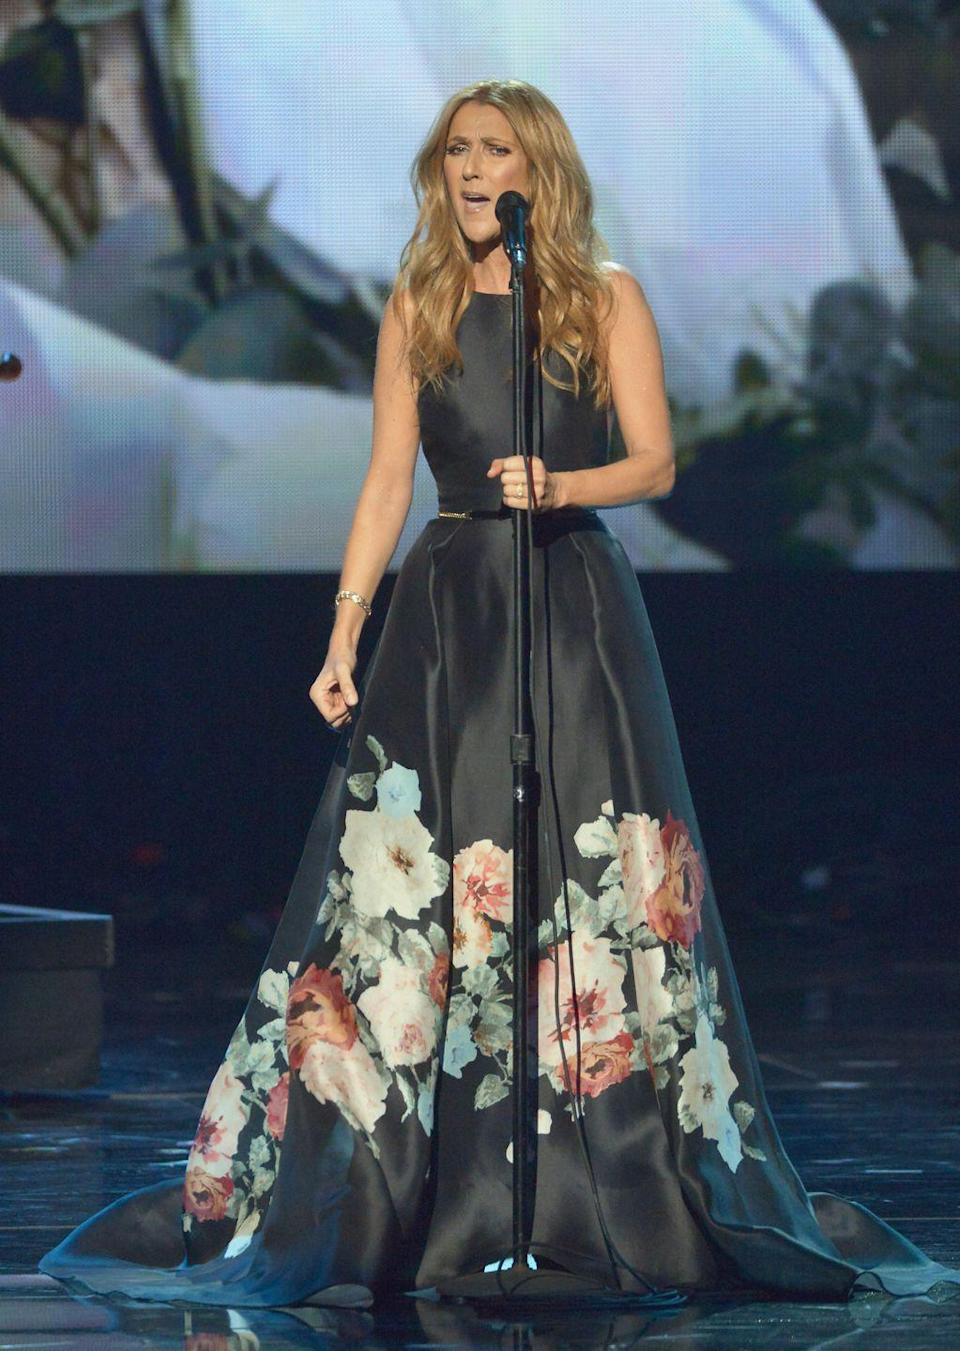 <p>Dion performed at the American Music Awards, wearing a flattering belted ball gown with floral detailing. Her beachy waves and minimal jewelry make the look less stuffy and more bohemian.</p>